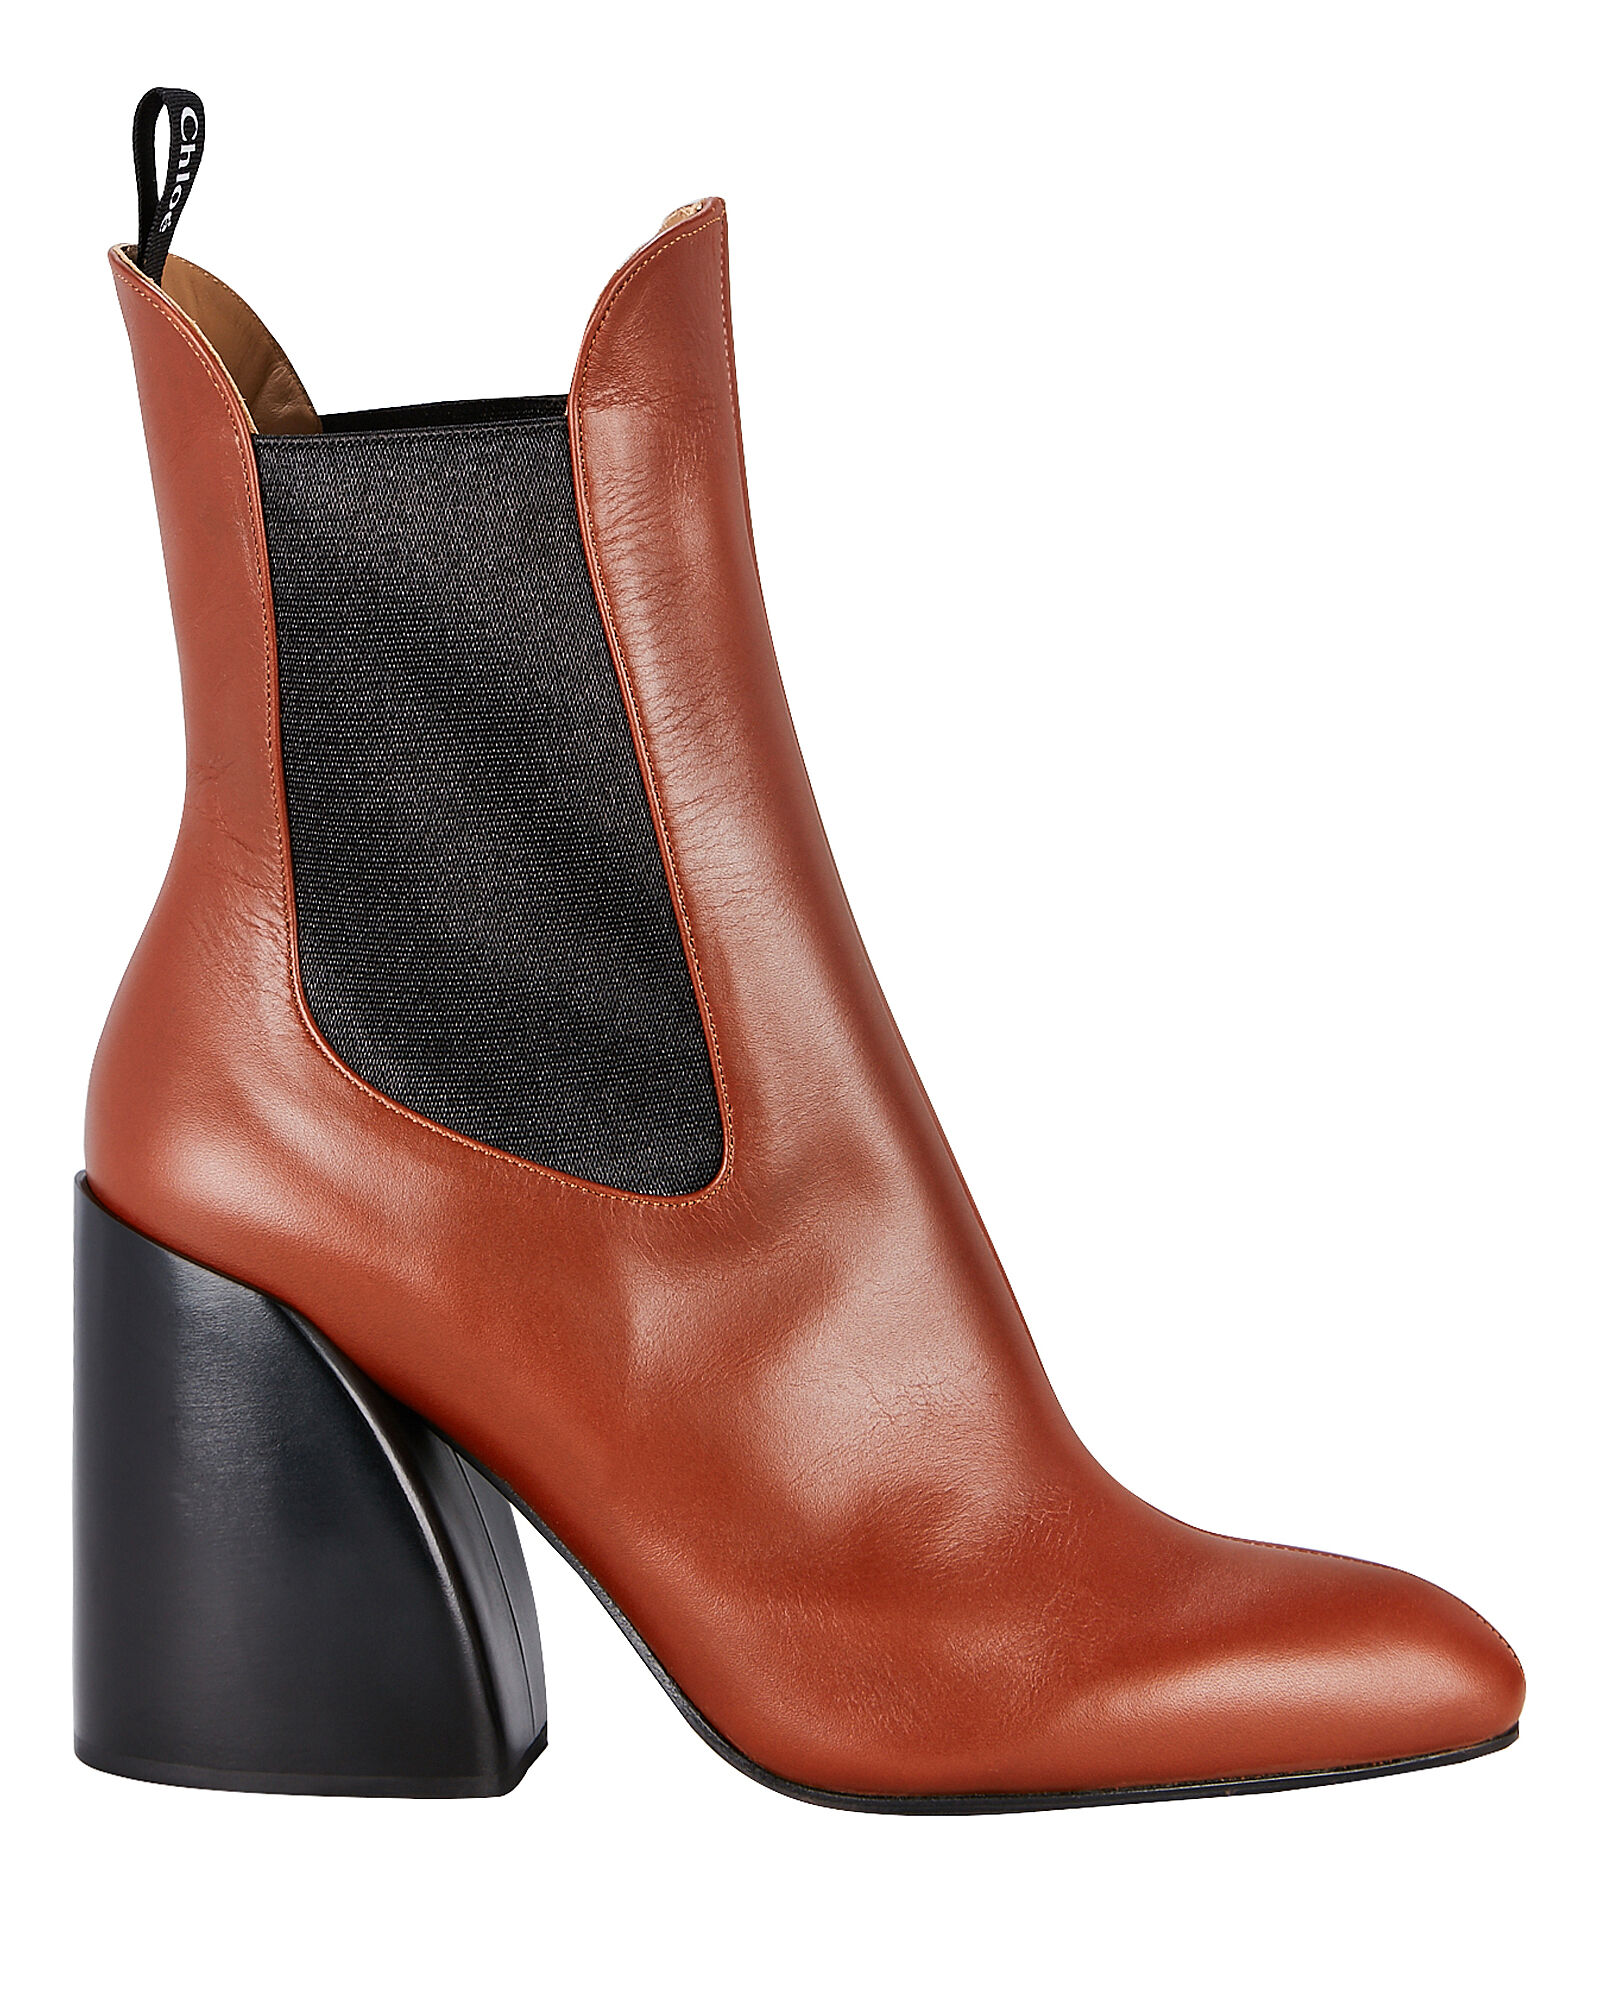 Wave Chelsea Leather Boots, BROWN, hi-res